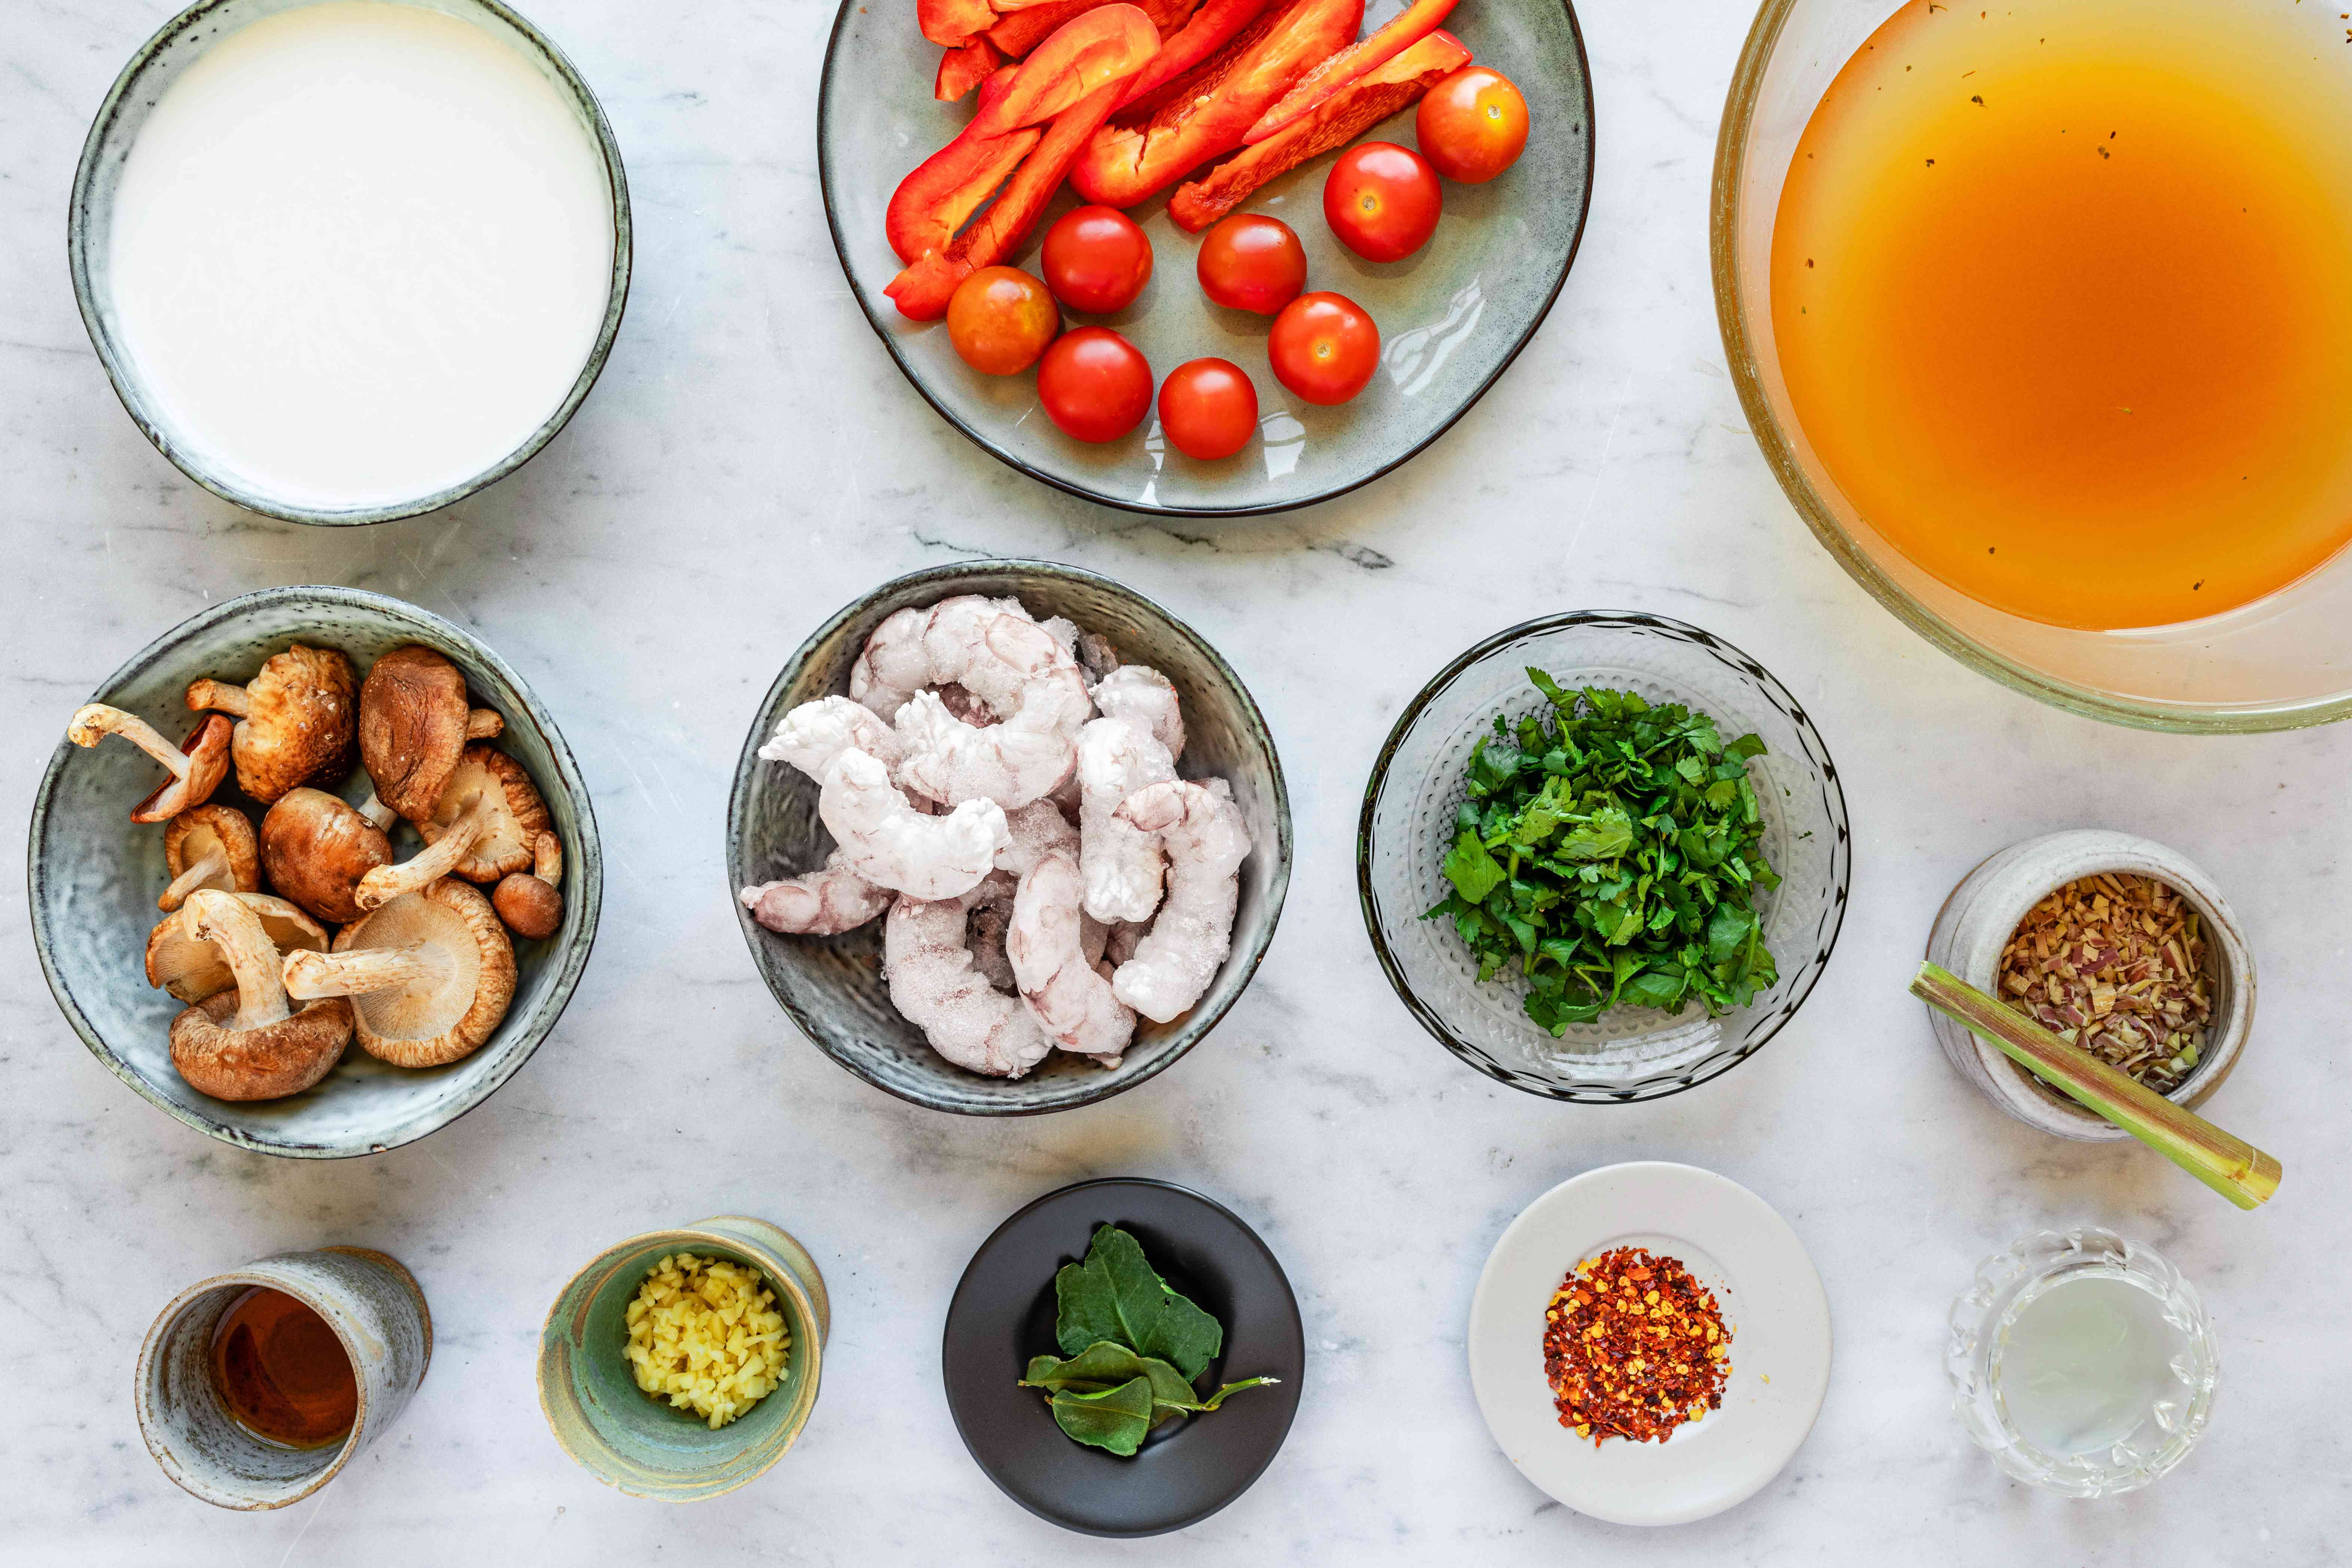 Ingredients for easy tom yum soup